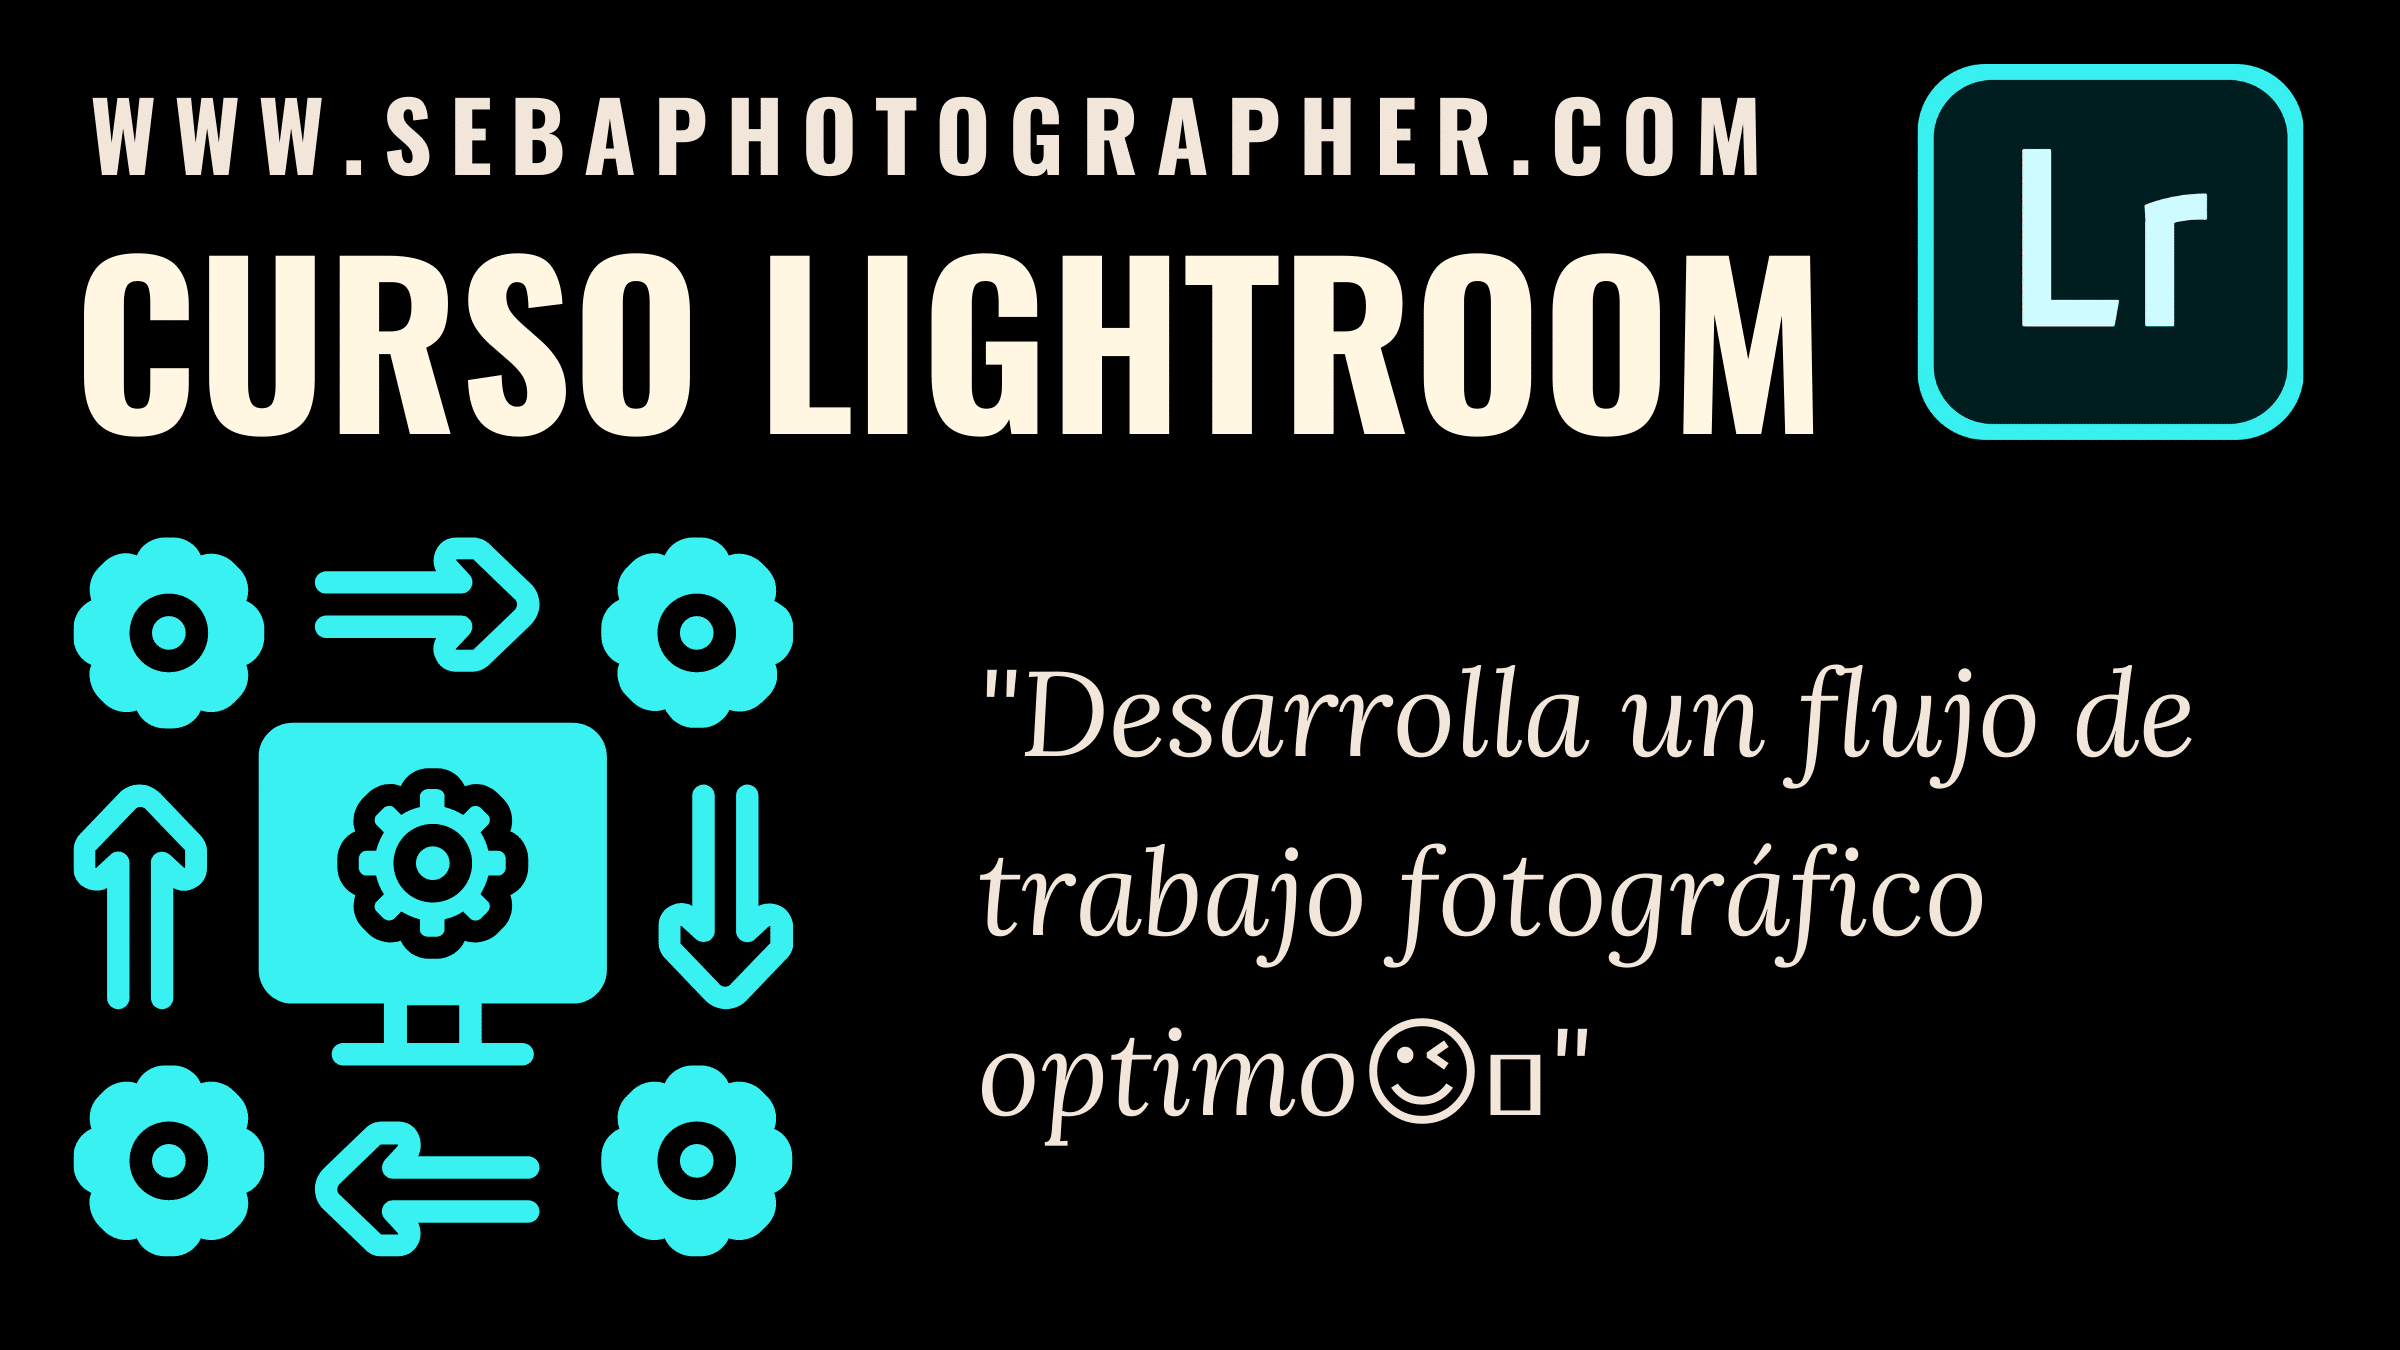 Curso Lightroom